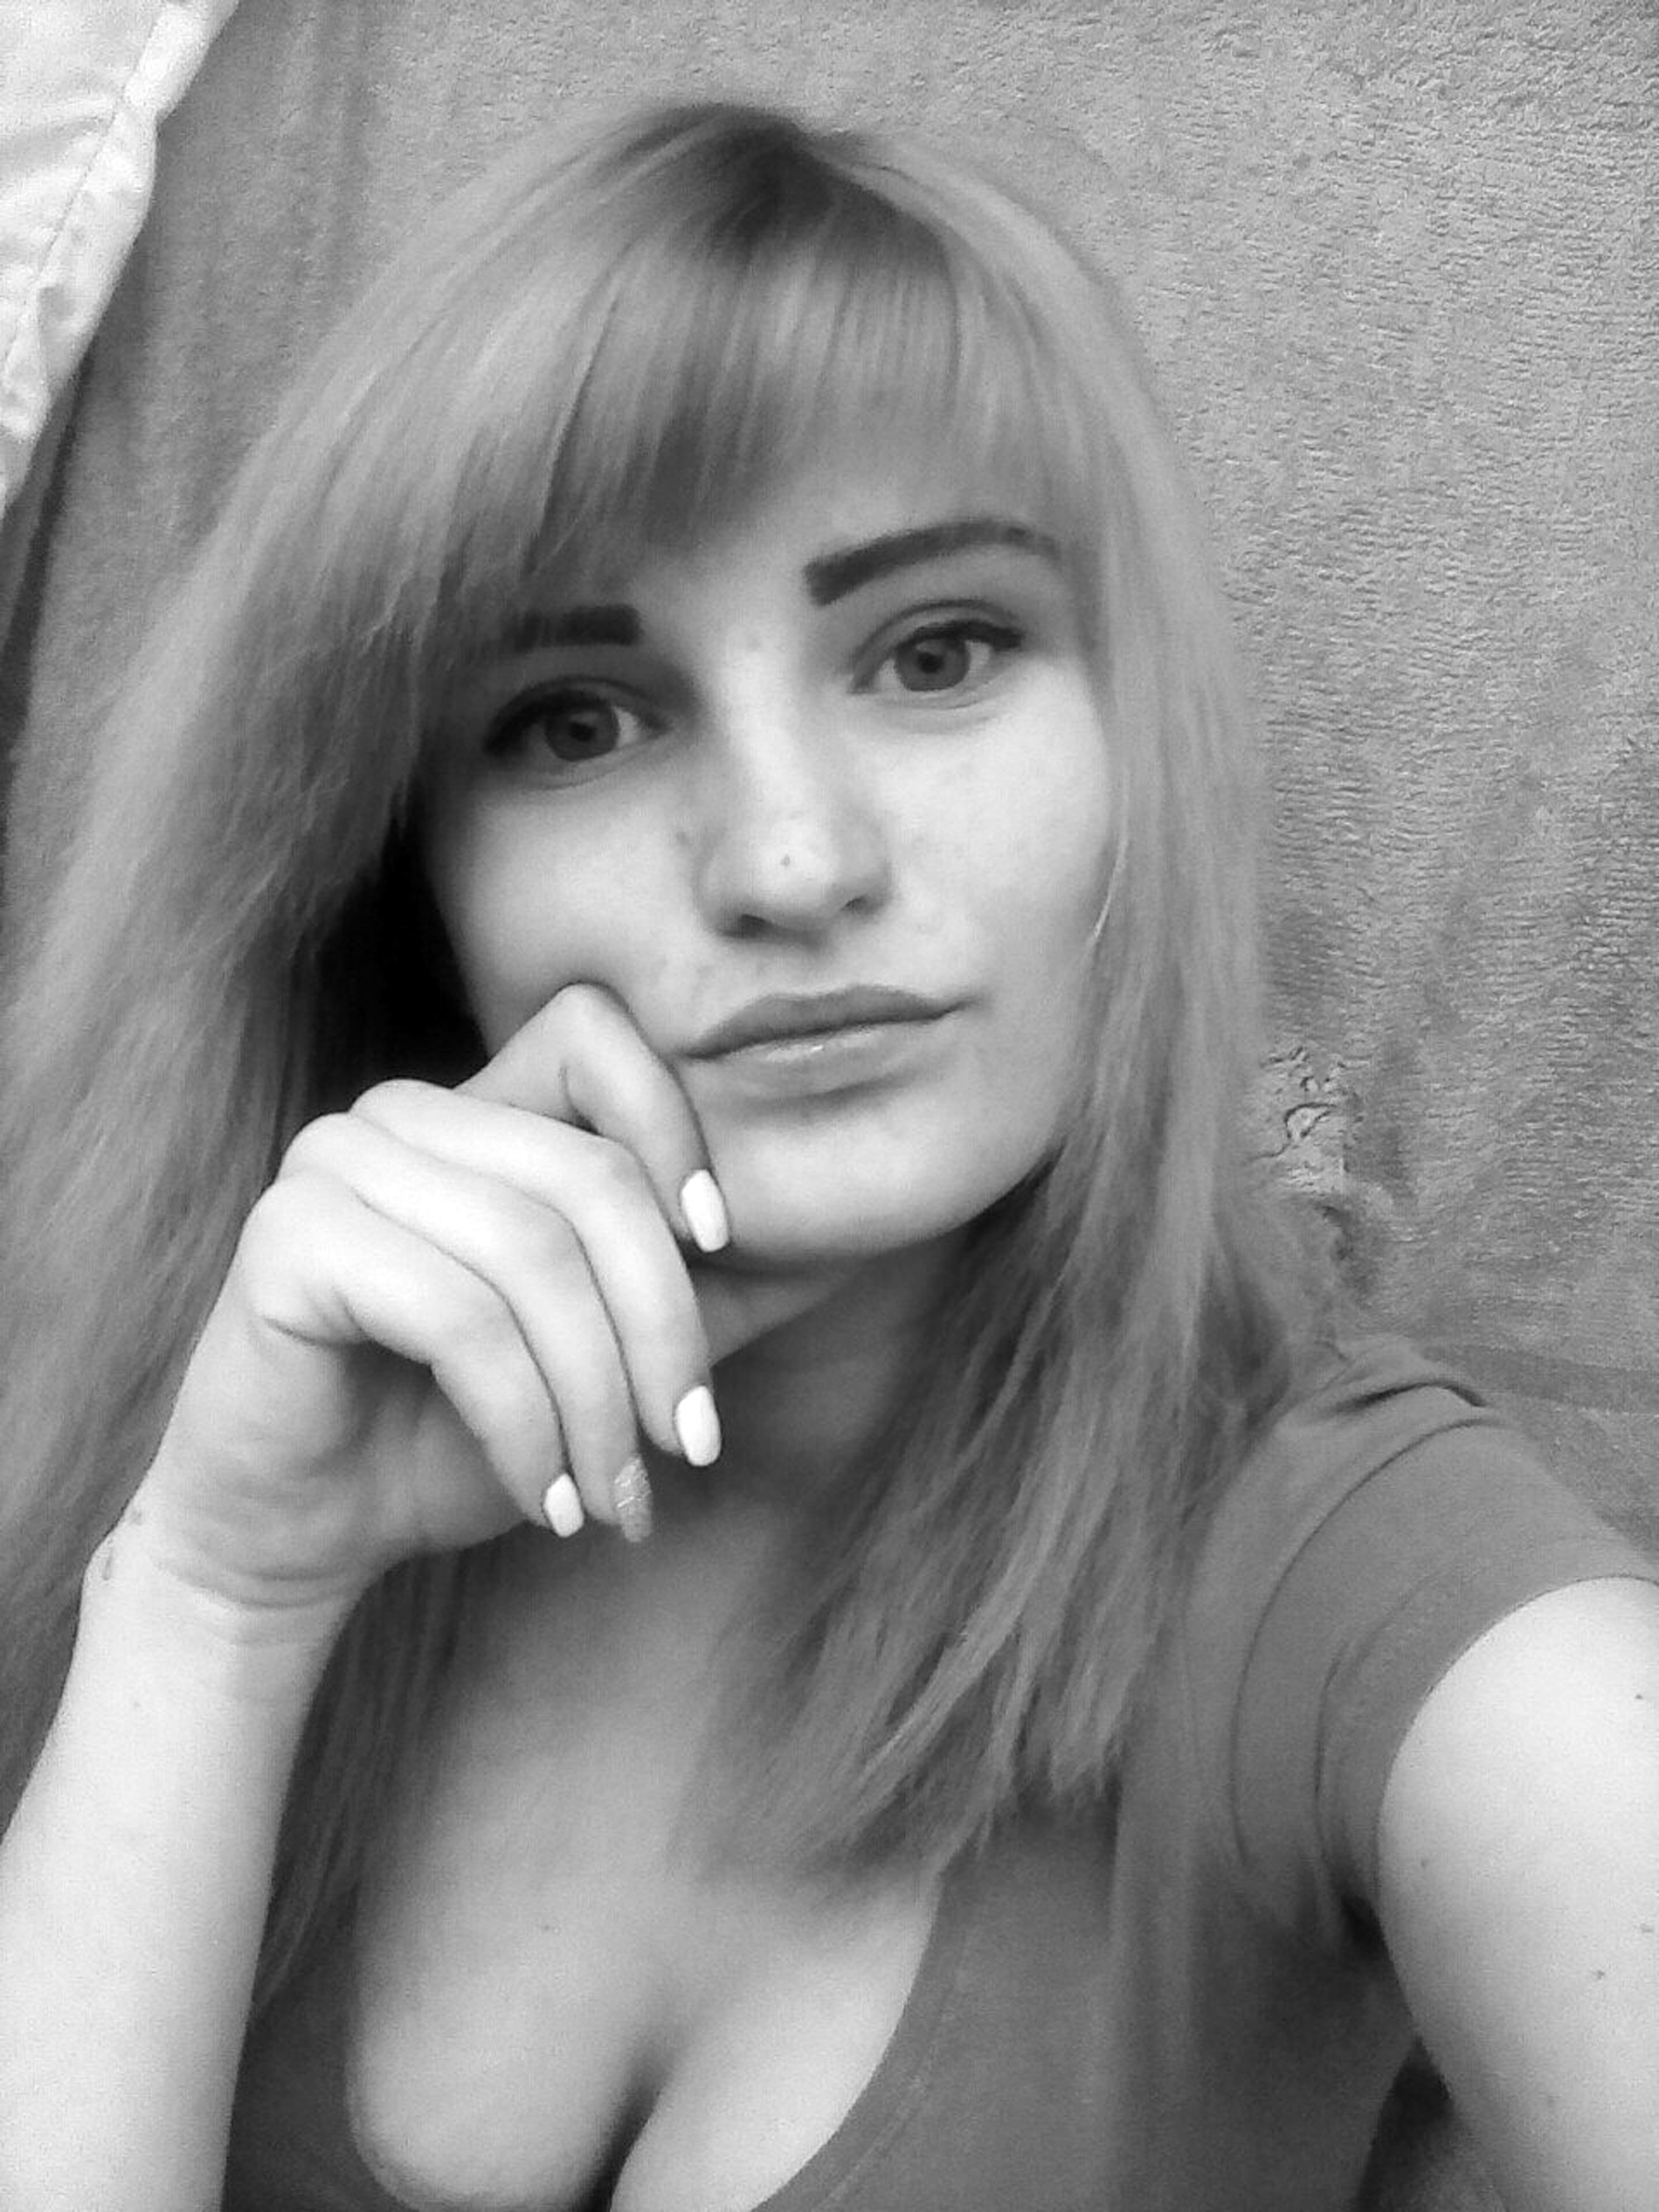 Vladislava Podchapko, 20, is aid to have left her children alone in her flat for nine days